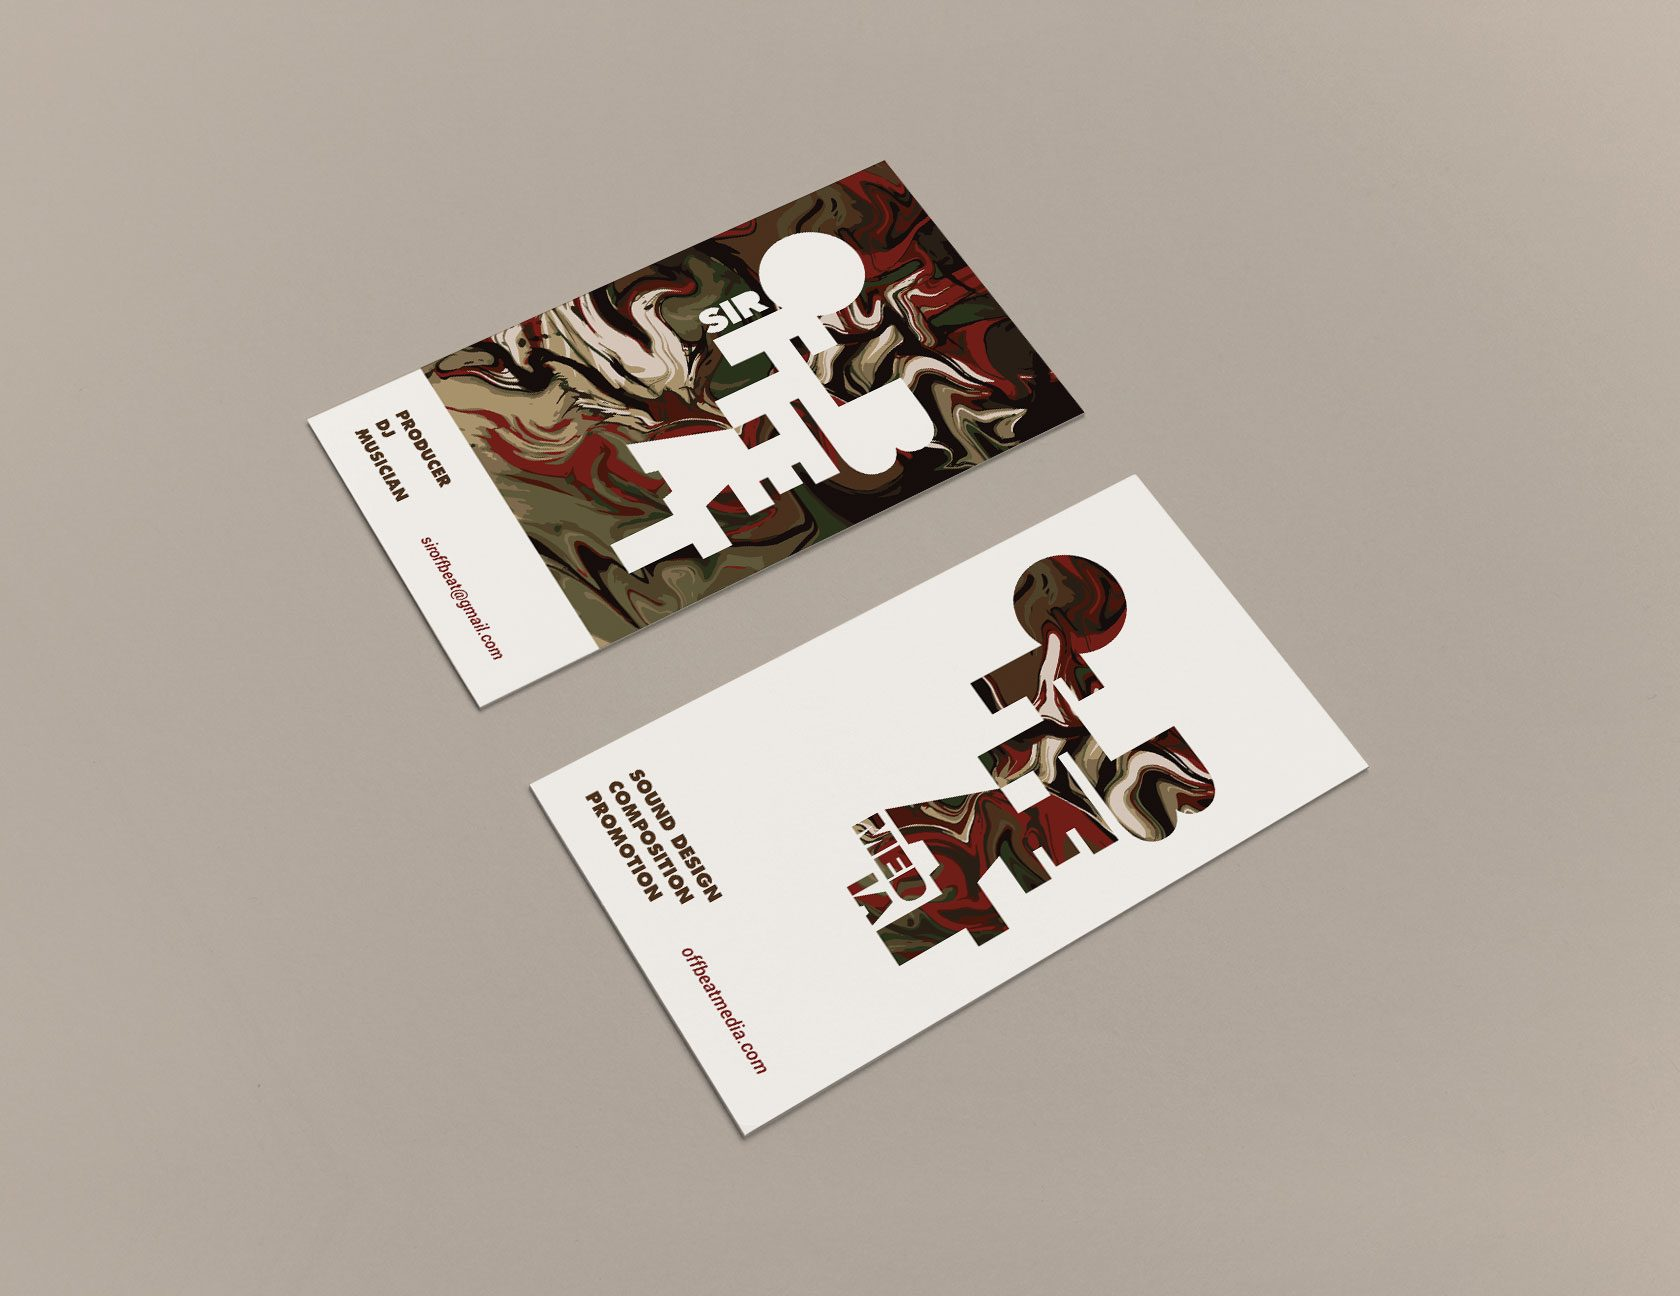 Sir Offbeat Business Card Design by Furia